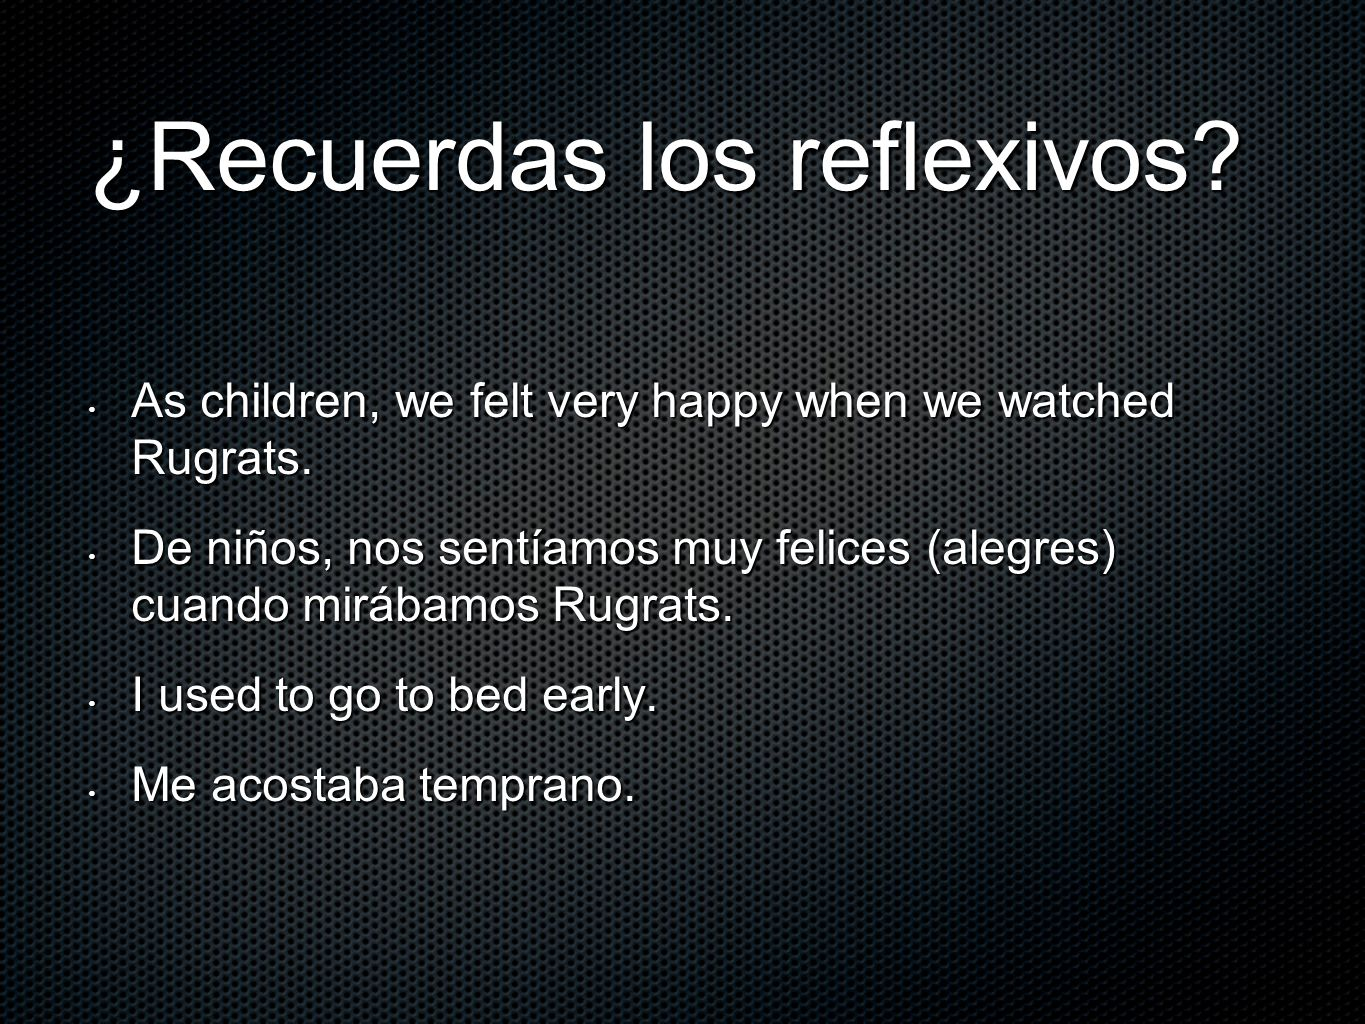 Previously, you learned that reflexive verbs indicate that the subject of a sentence does the action to itself.